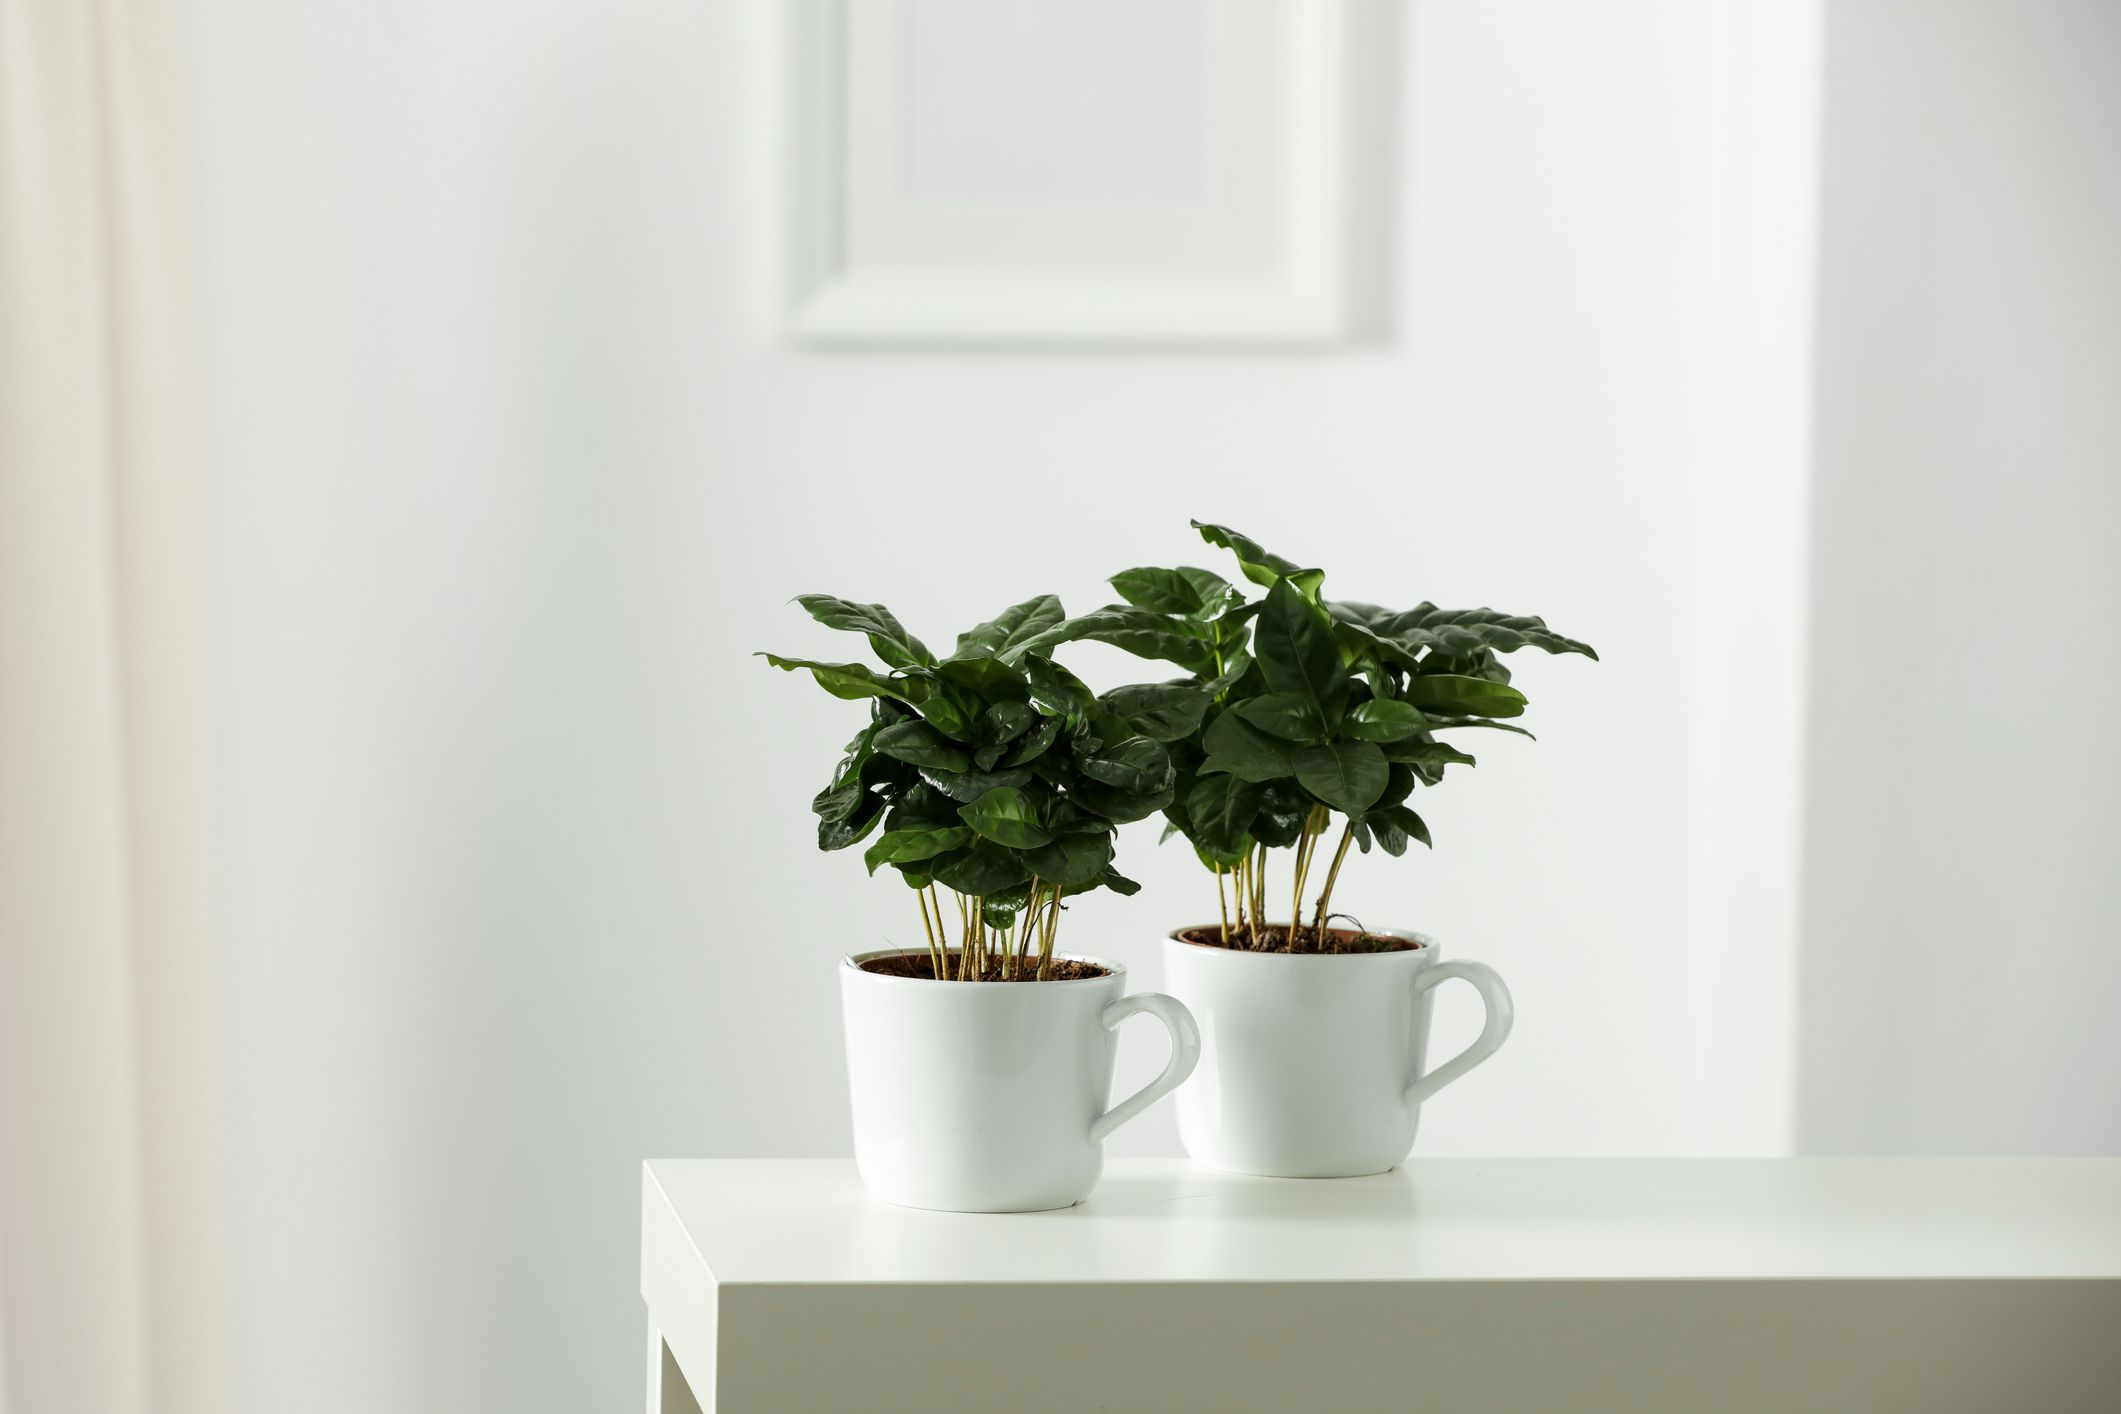 Young coffee plants growing in mugs